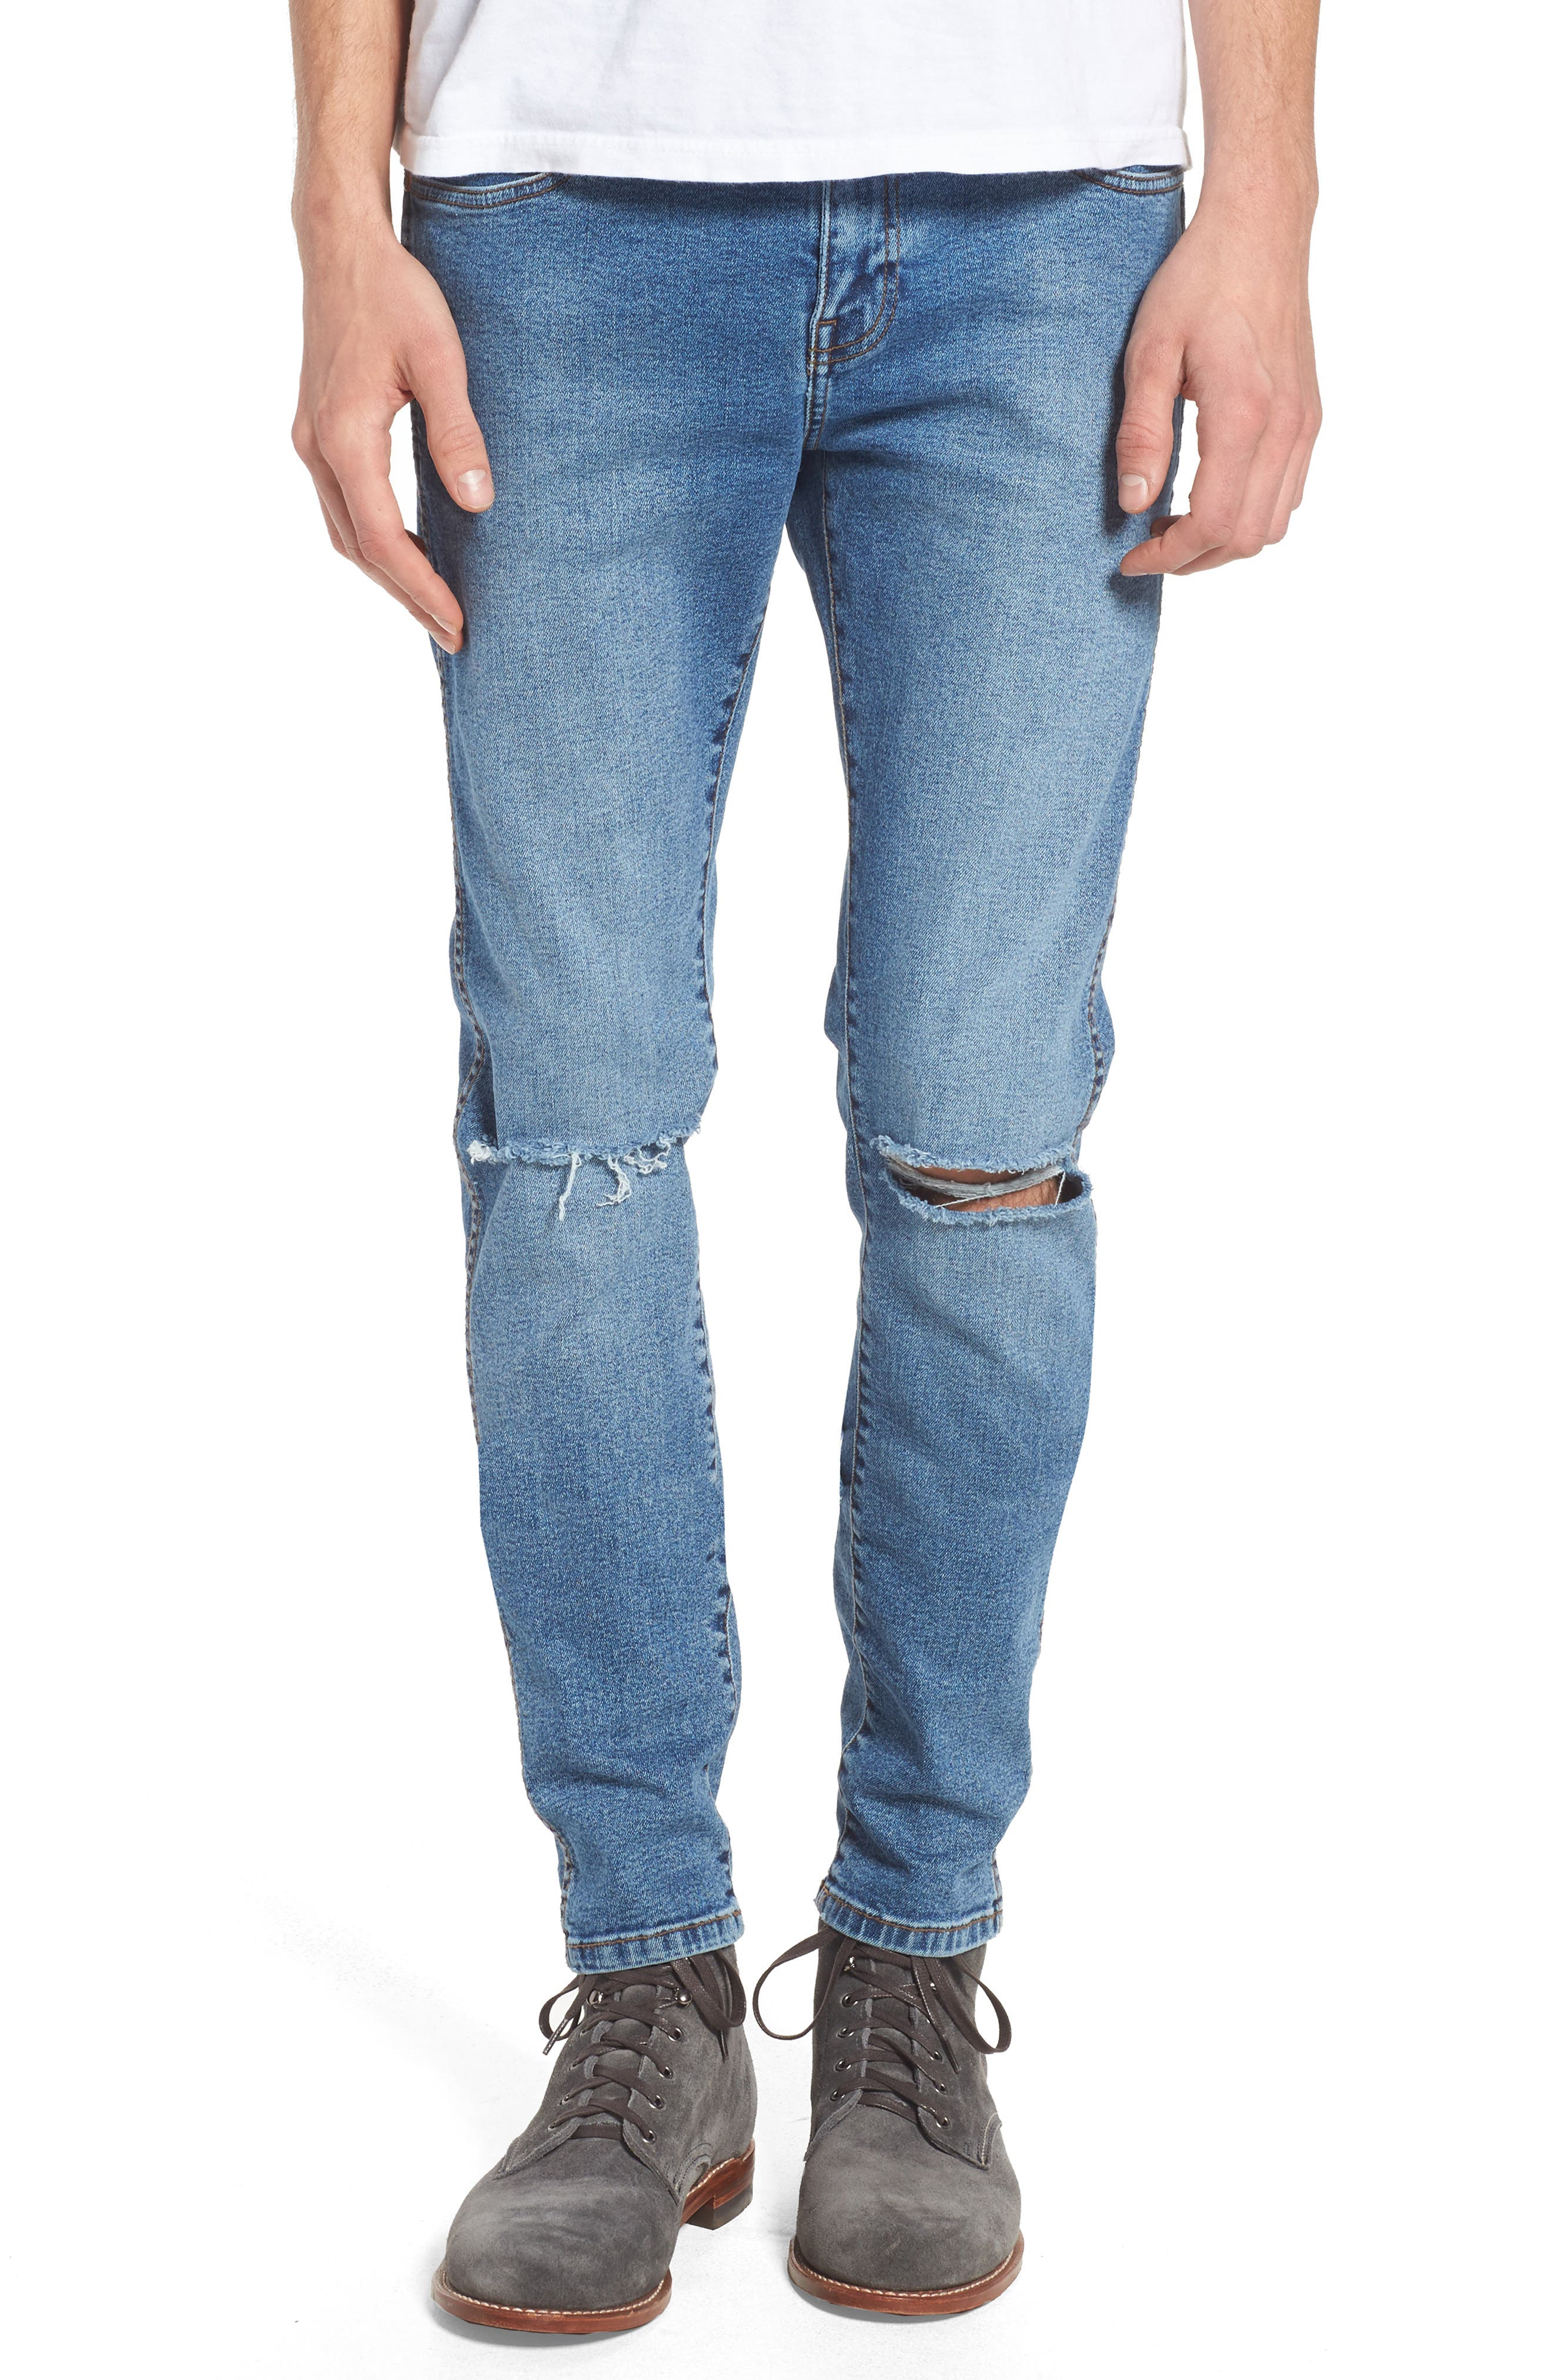 Snap Skinny Fit Jeans,                         Main,                         color, Light Stone Destroyed